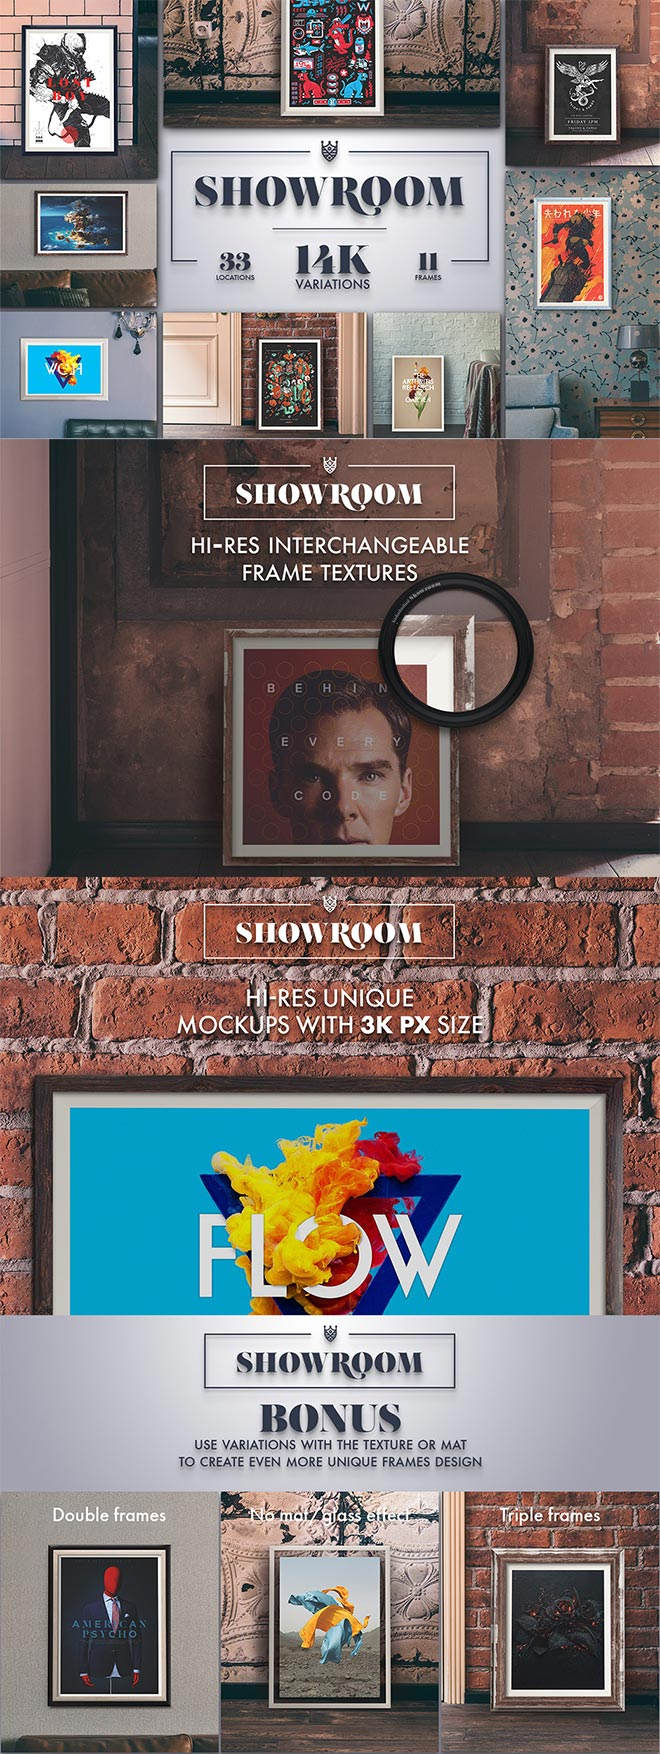 Showroom – Frames Mockups